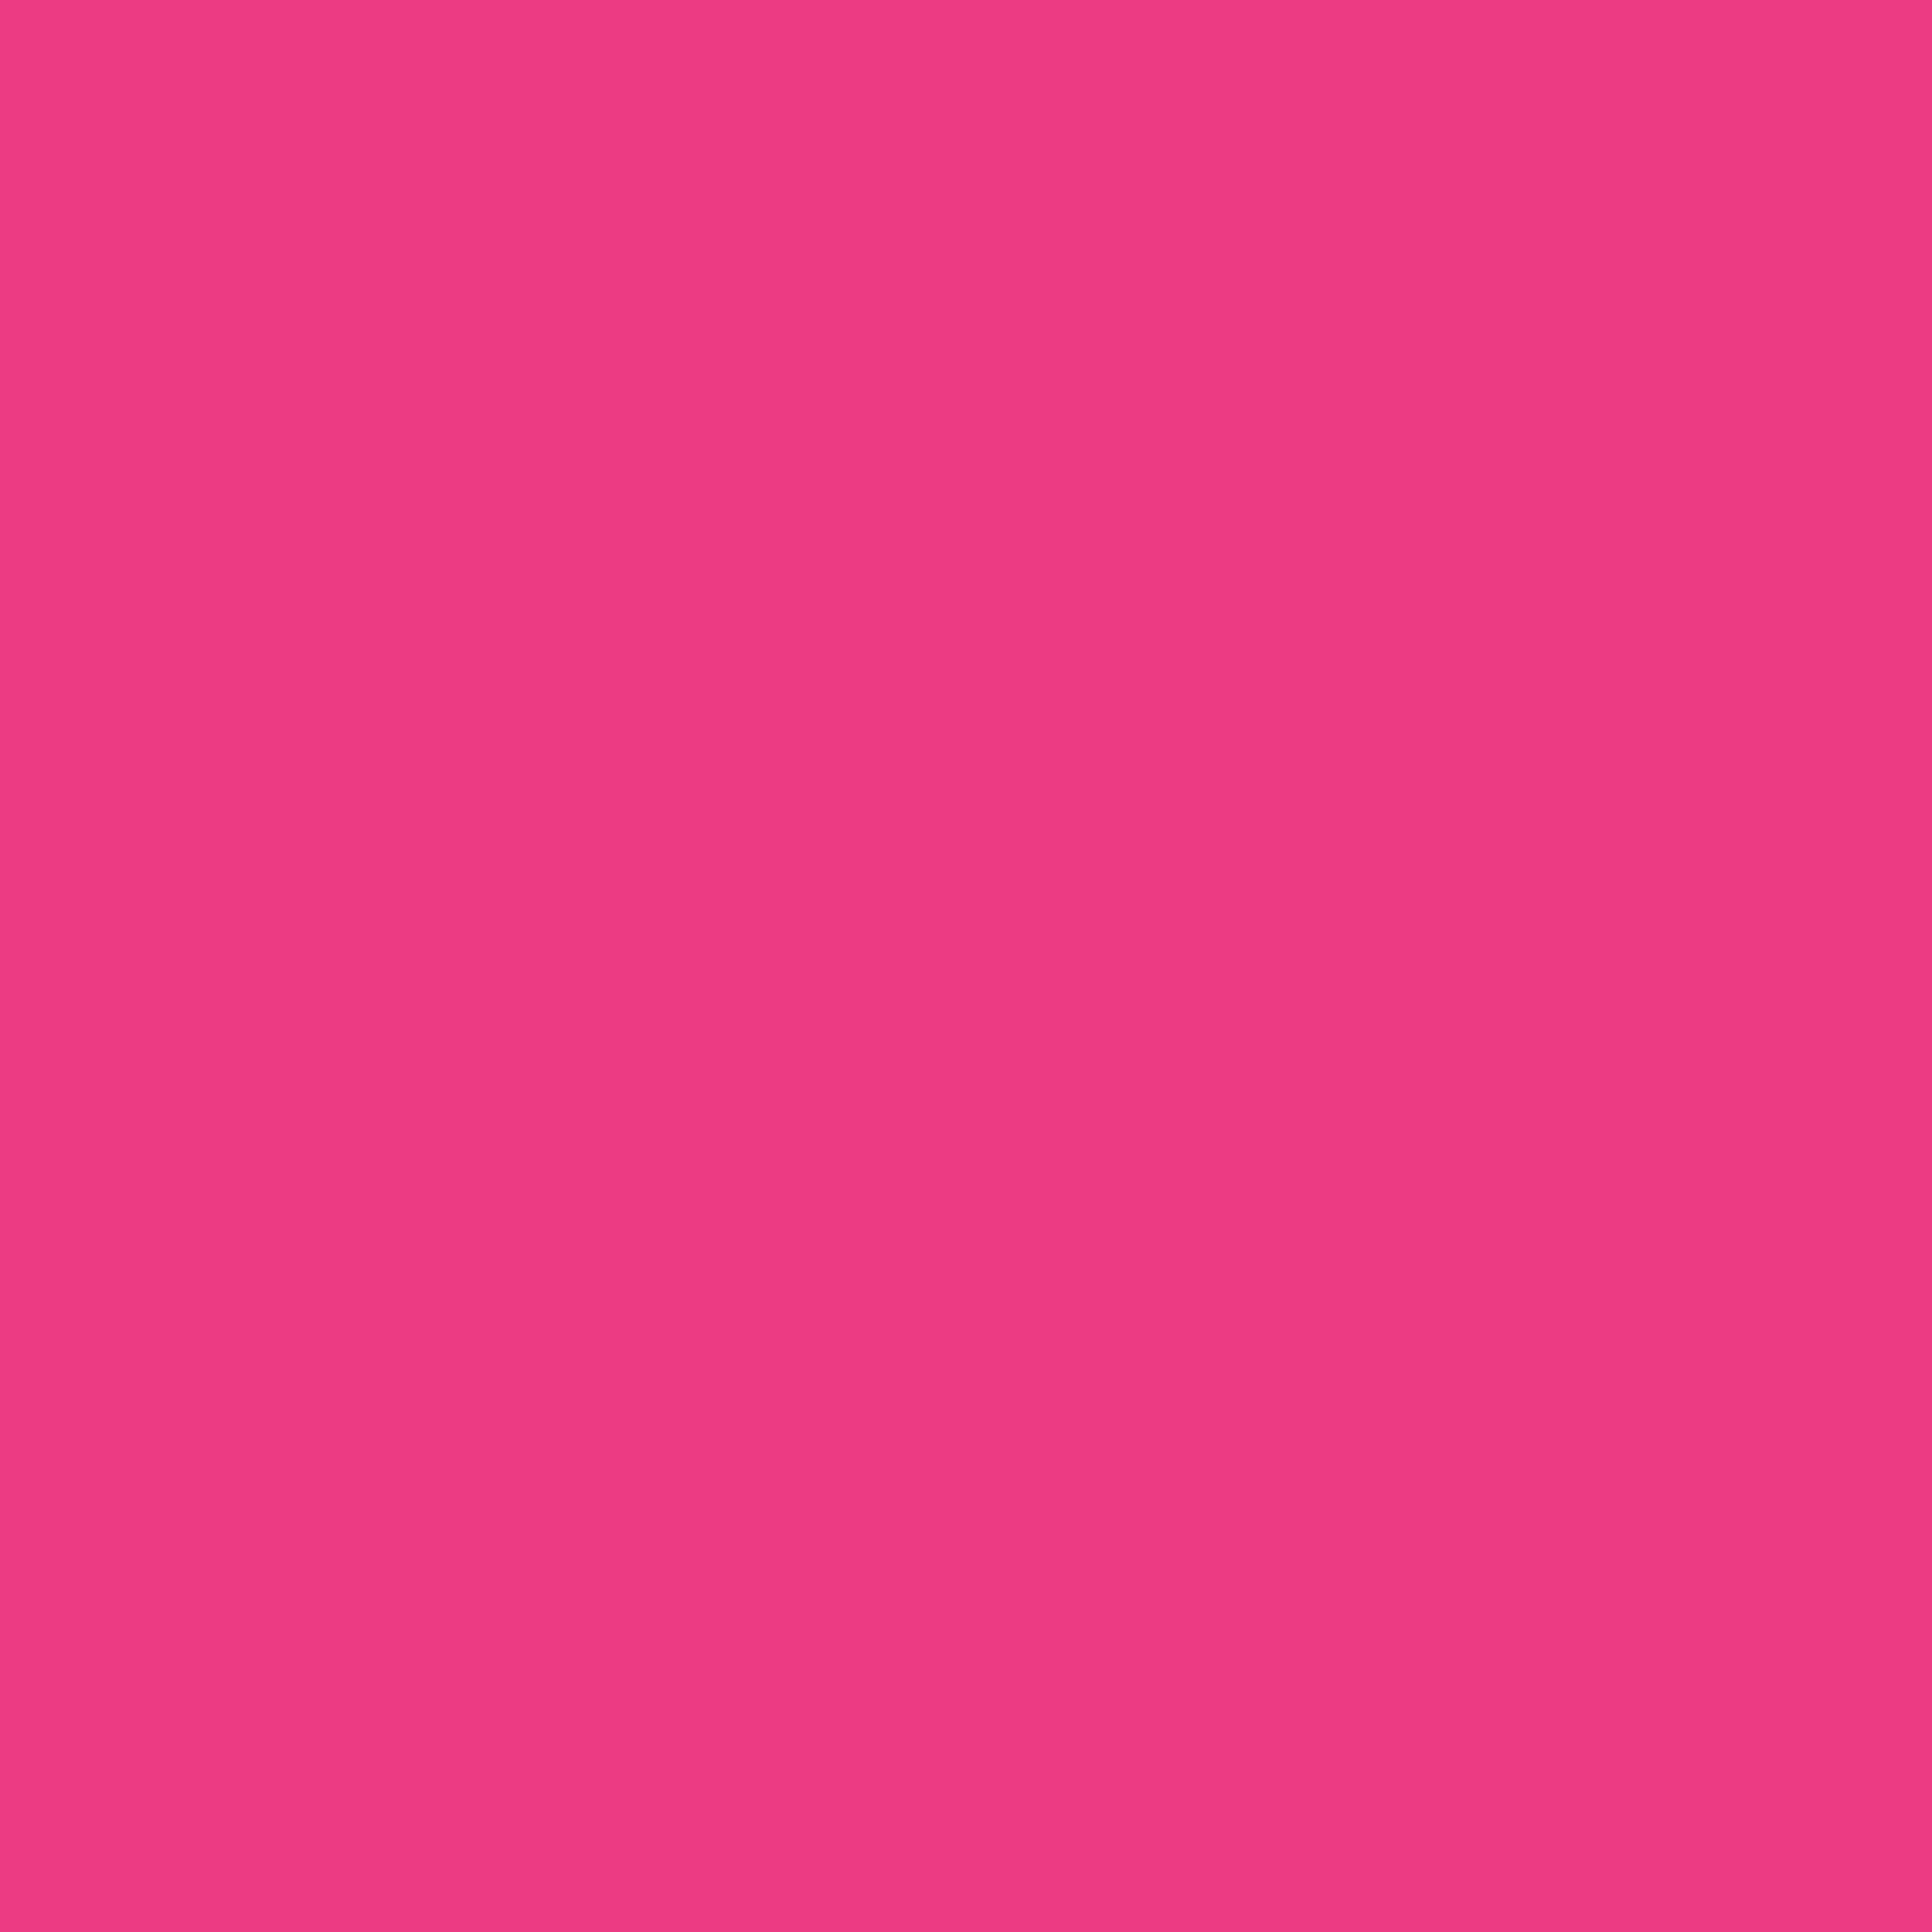 2732x2732 Cerise Pink Solid Color Background